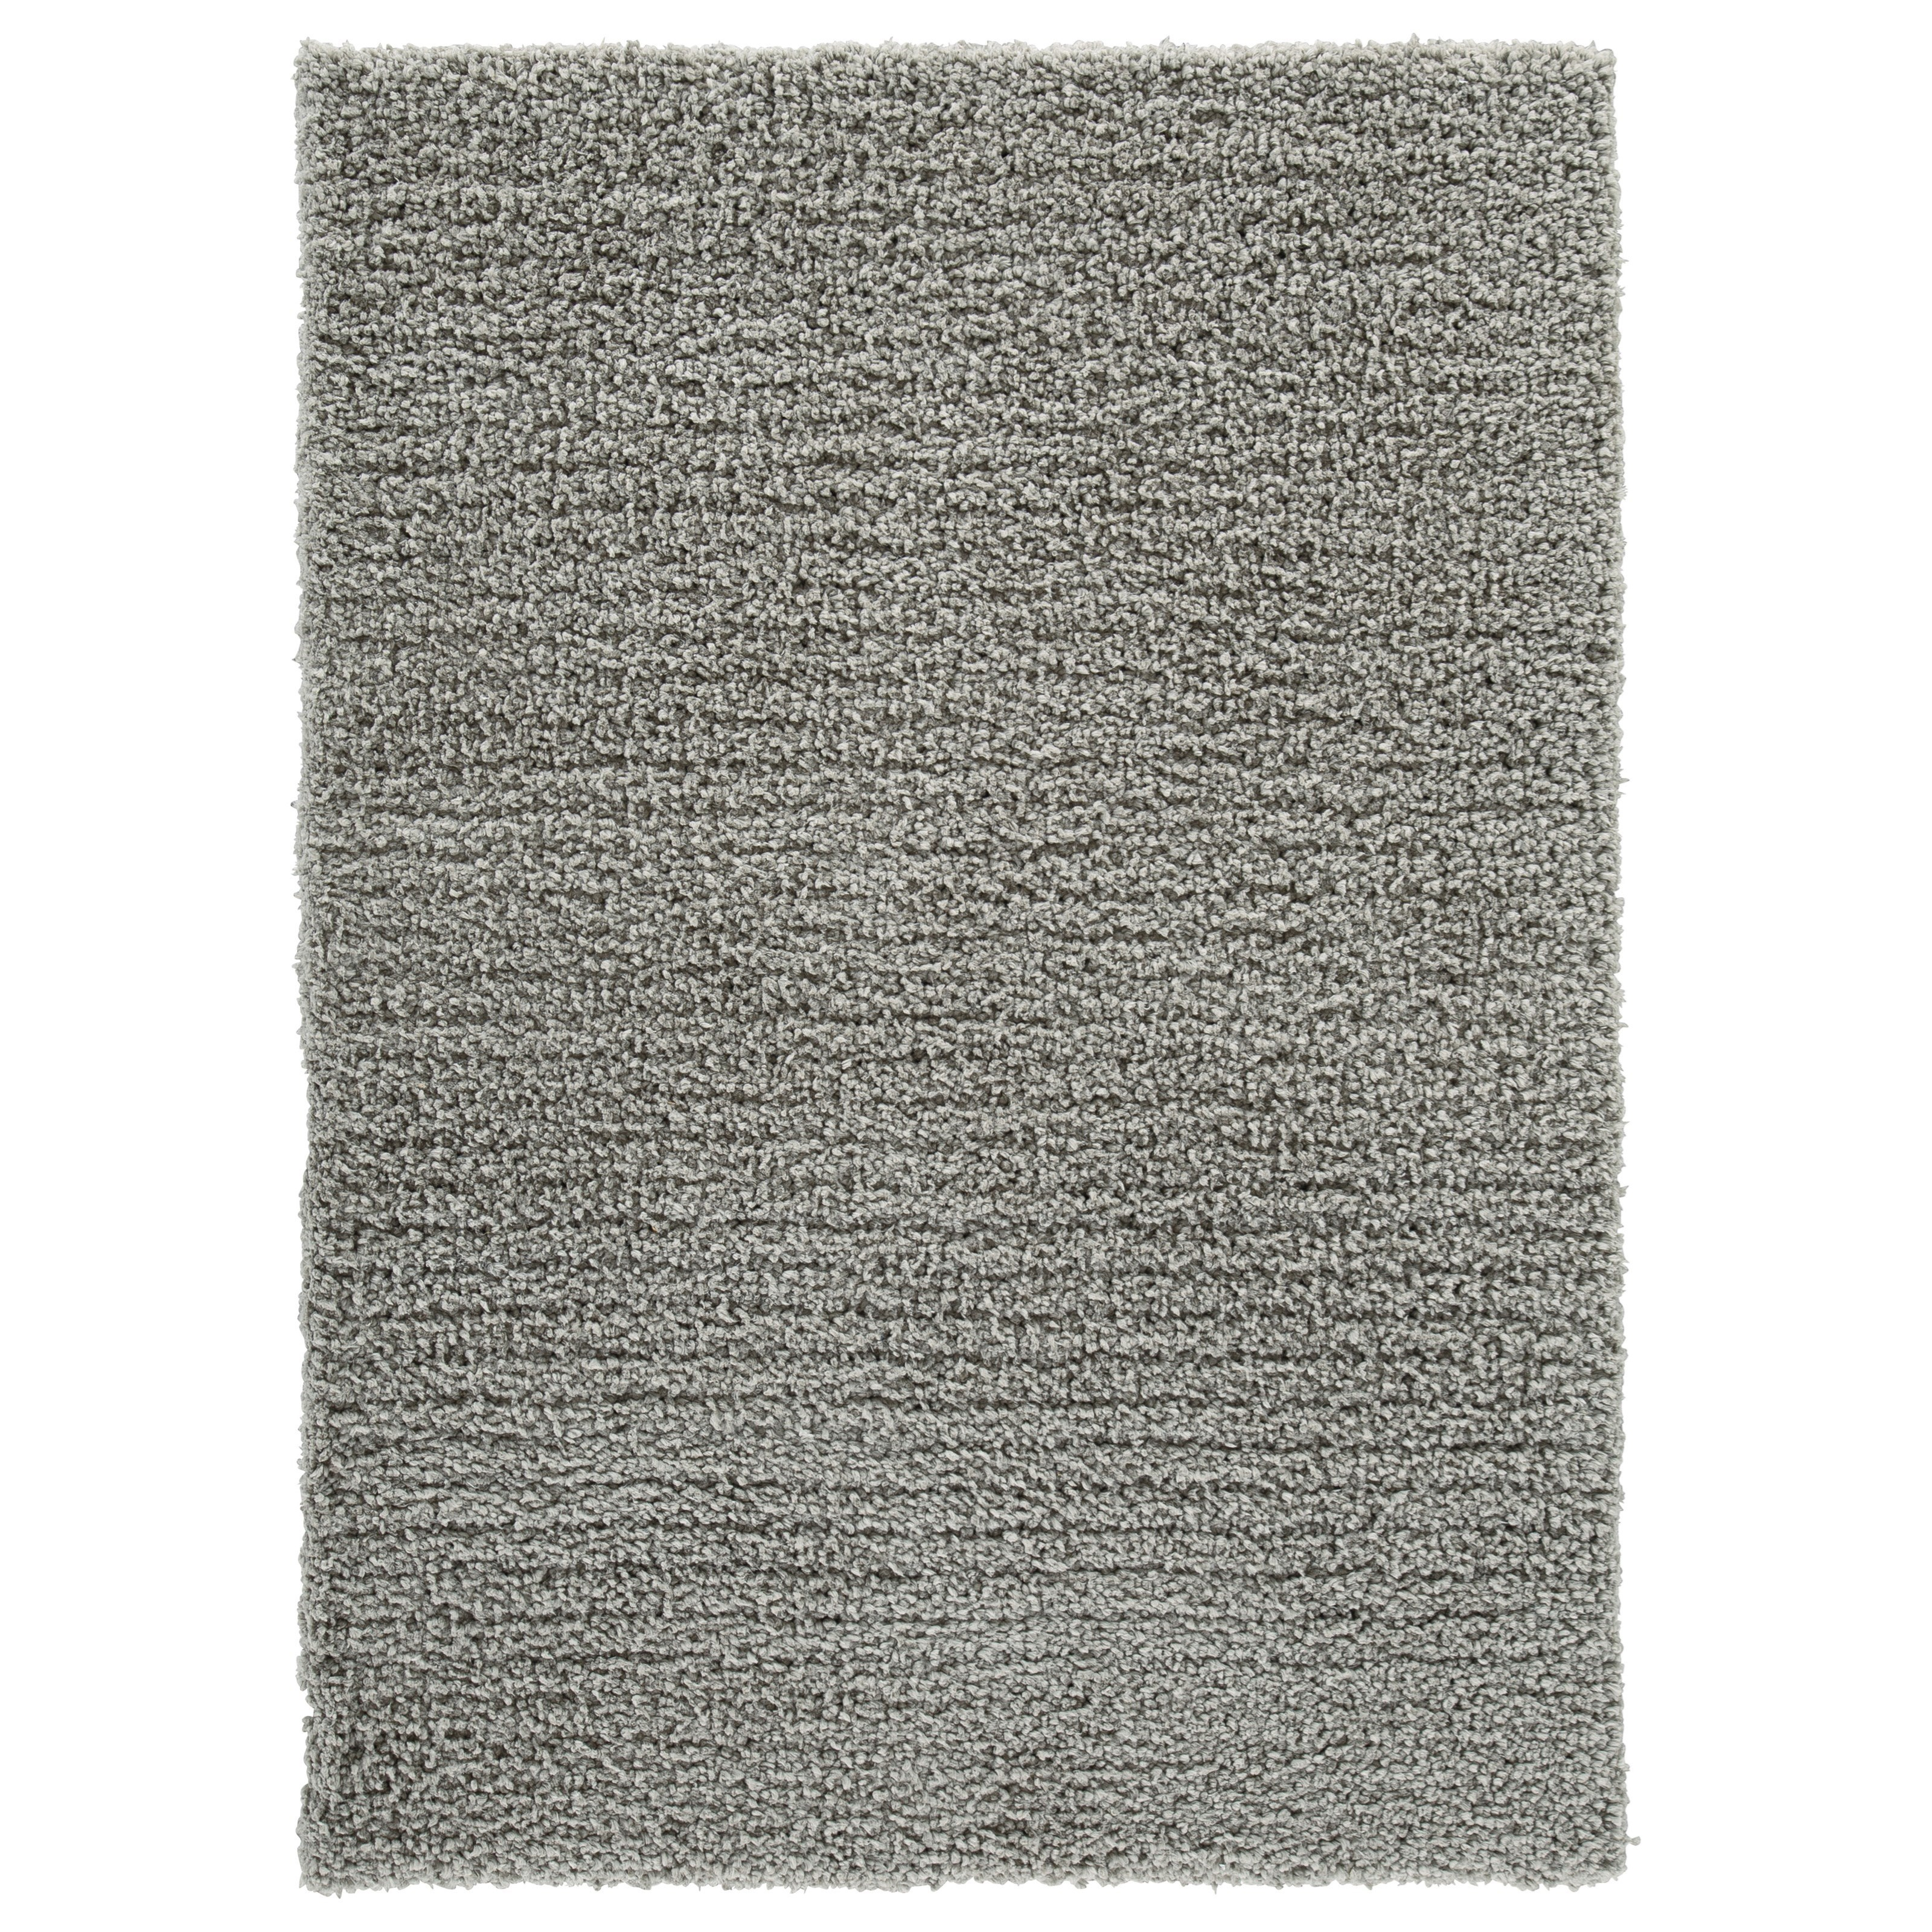 Casual Area Rugs Deion Taupe Medium Rug by Signature Design by Ashley at Zak's Warehouse Clearance Center